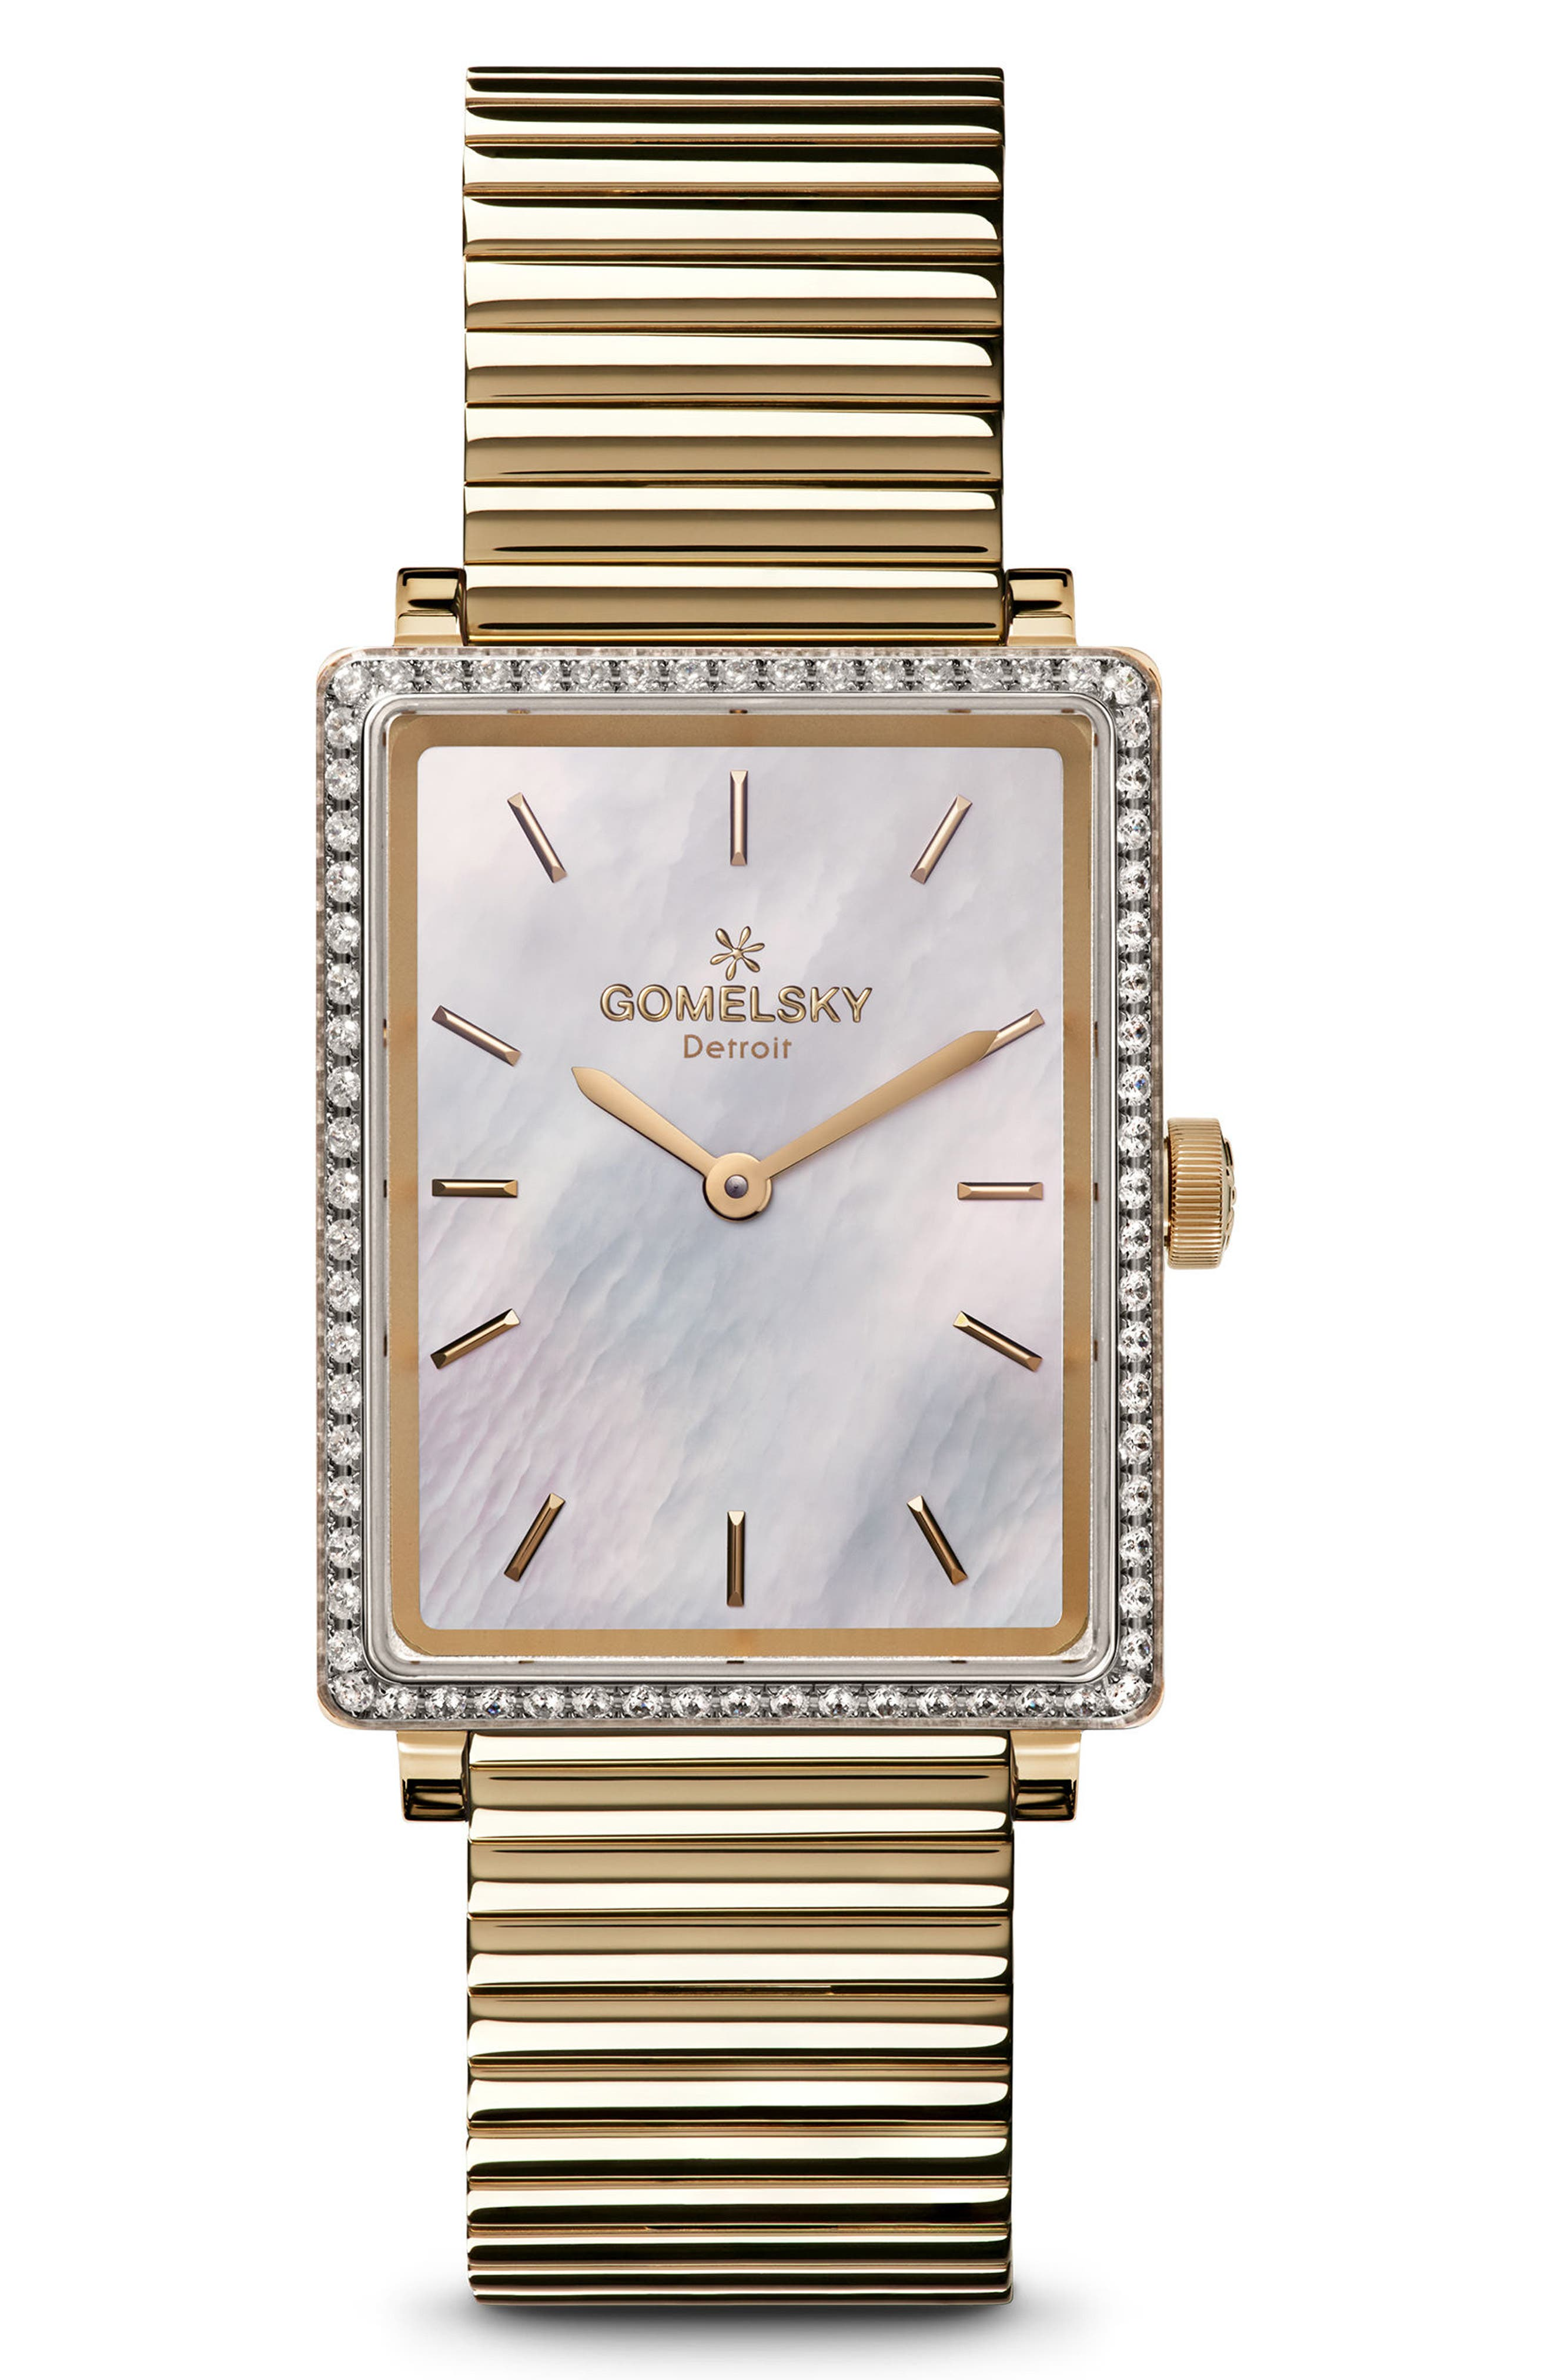 Gomelsky The Shirley Fromer Diamond Bracelet Watch, 32mm x 25mm